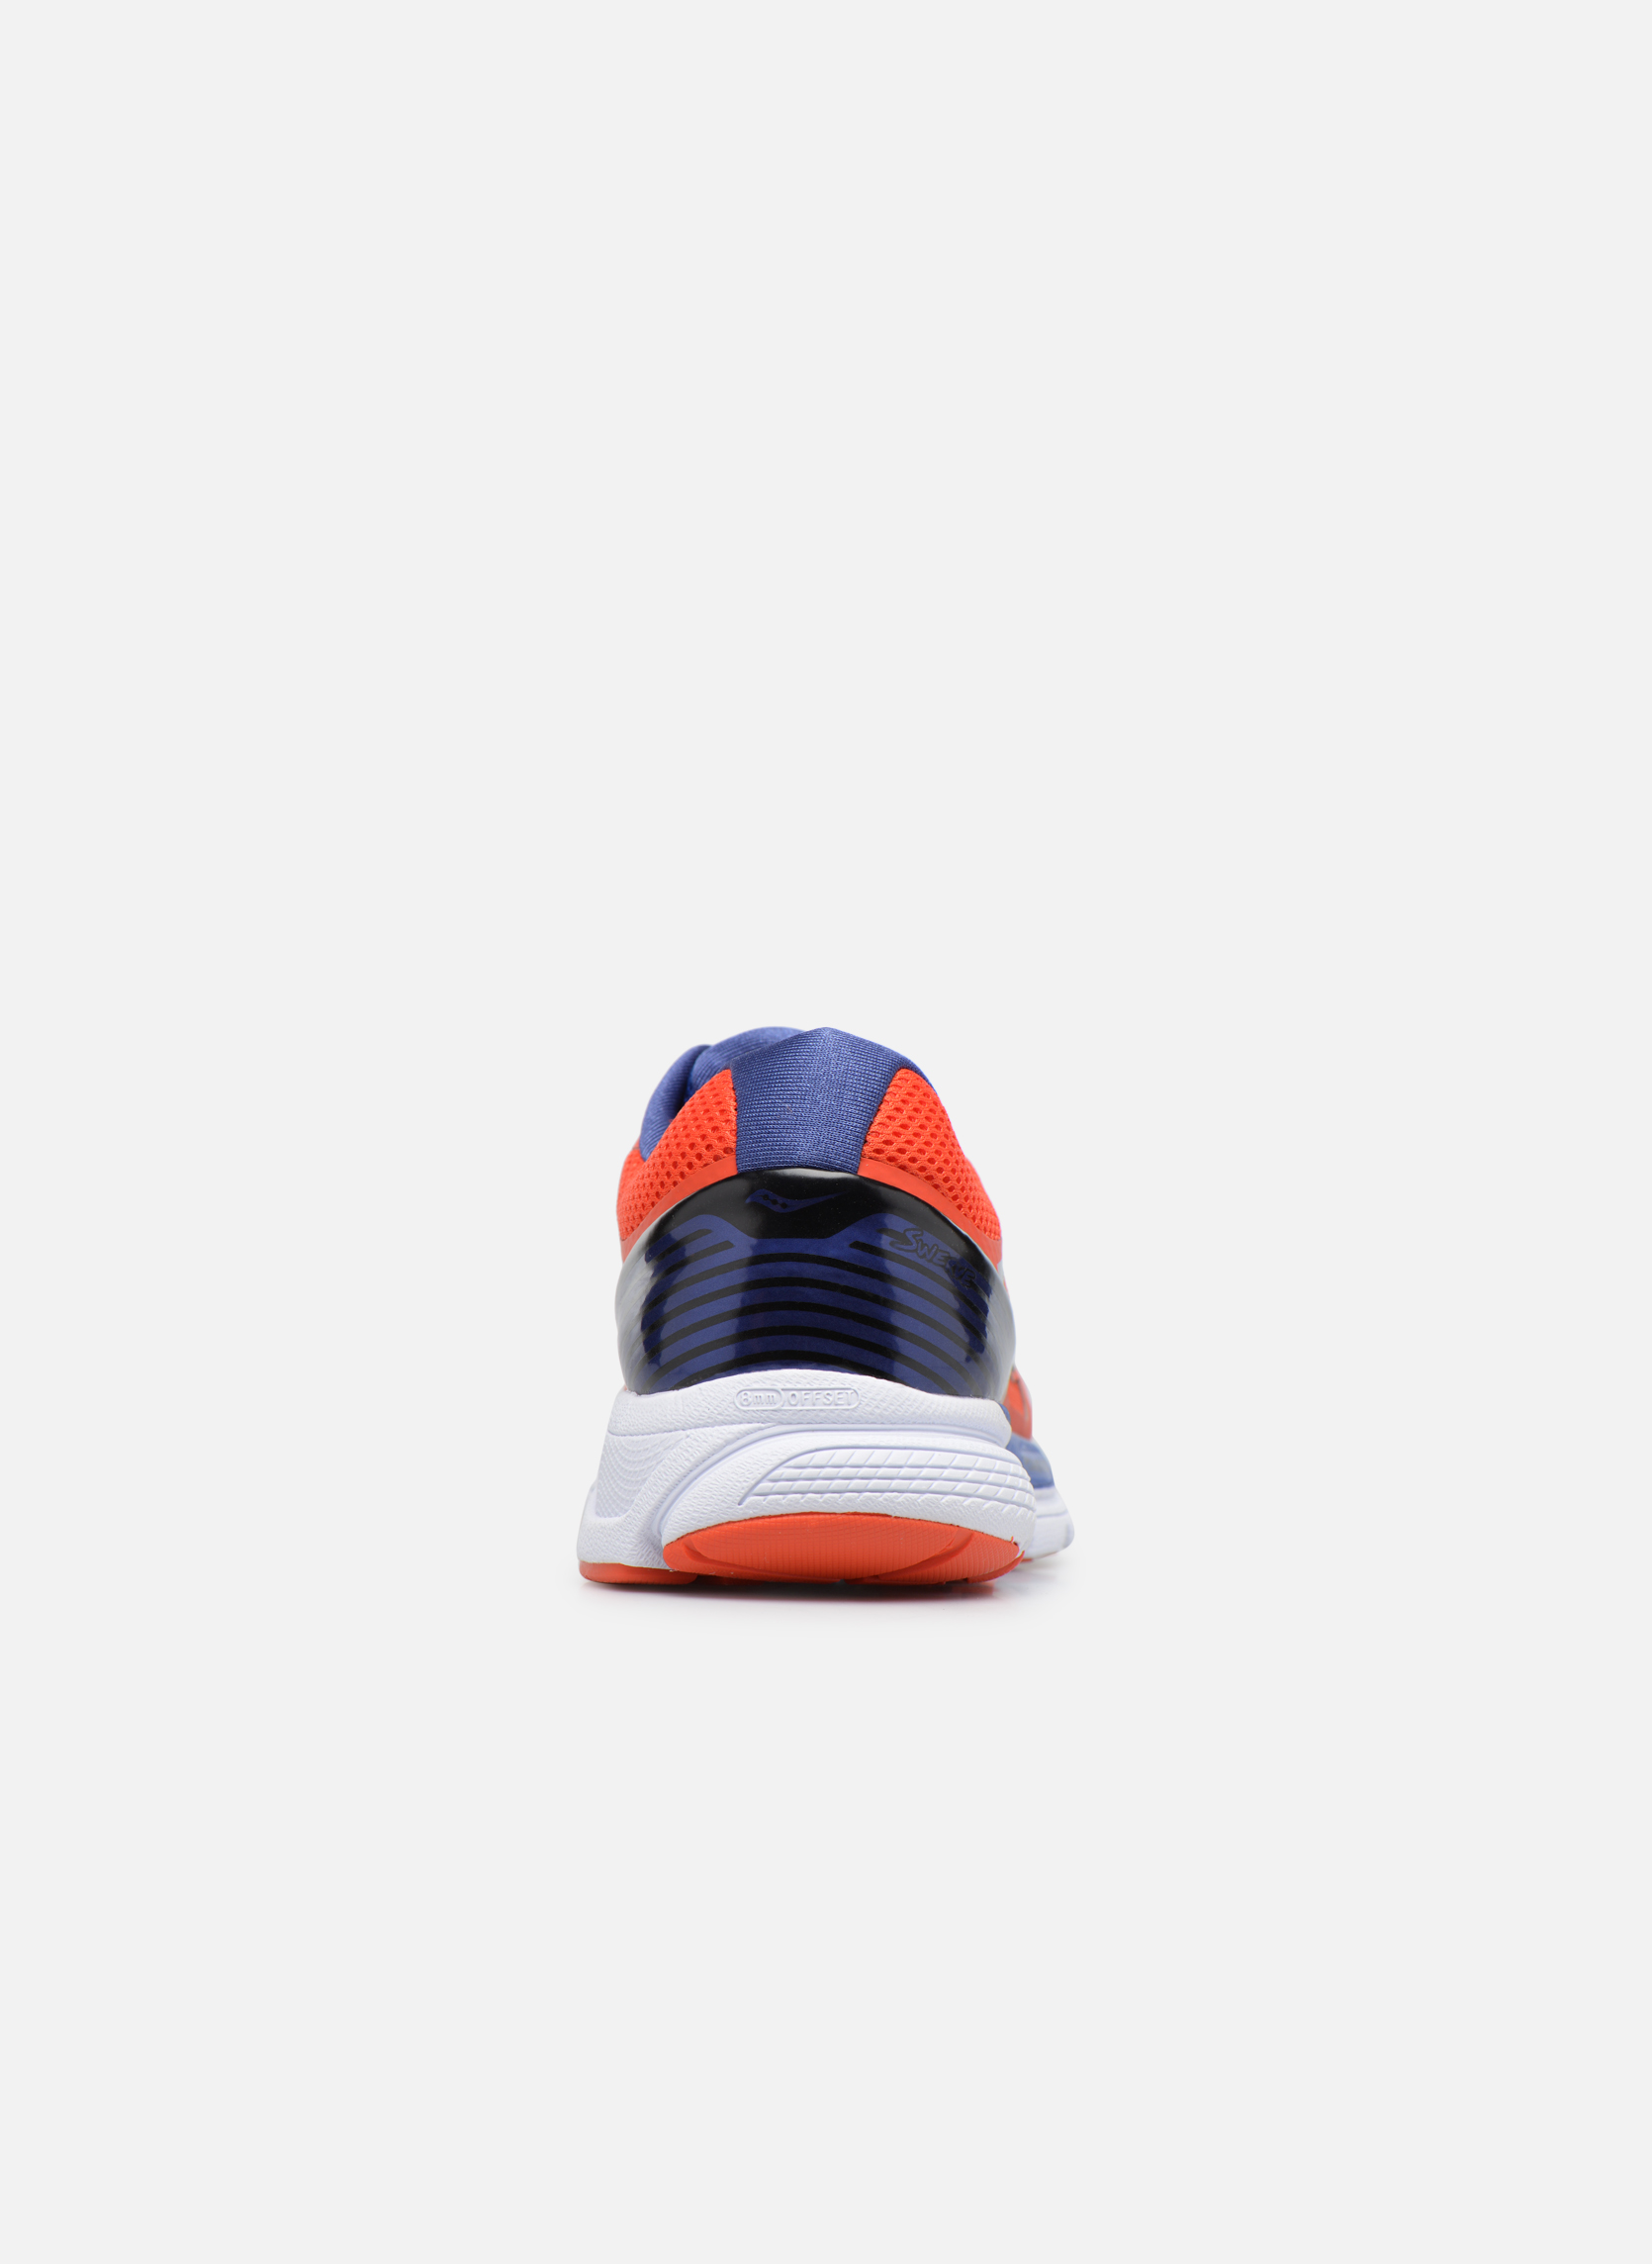 Swerve Red/navy